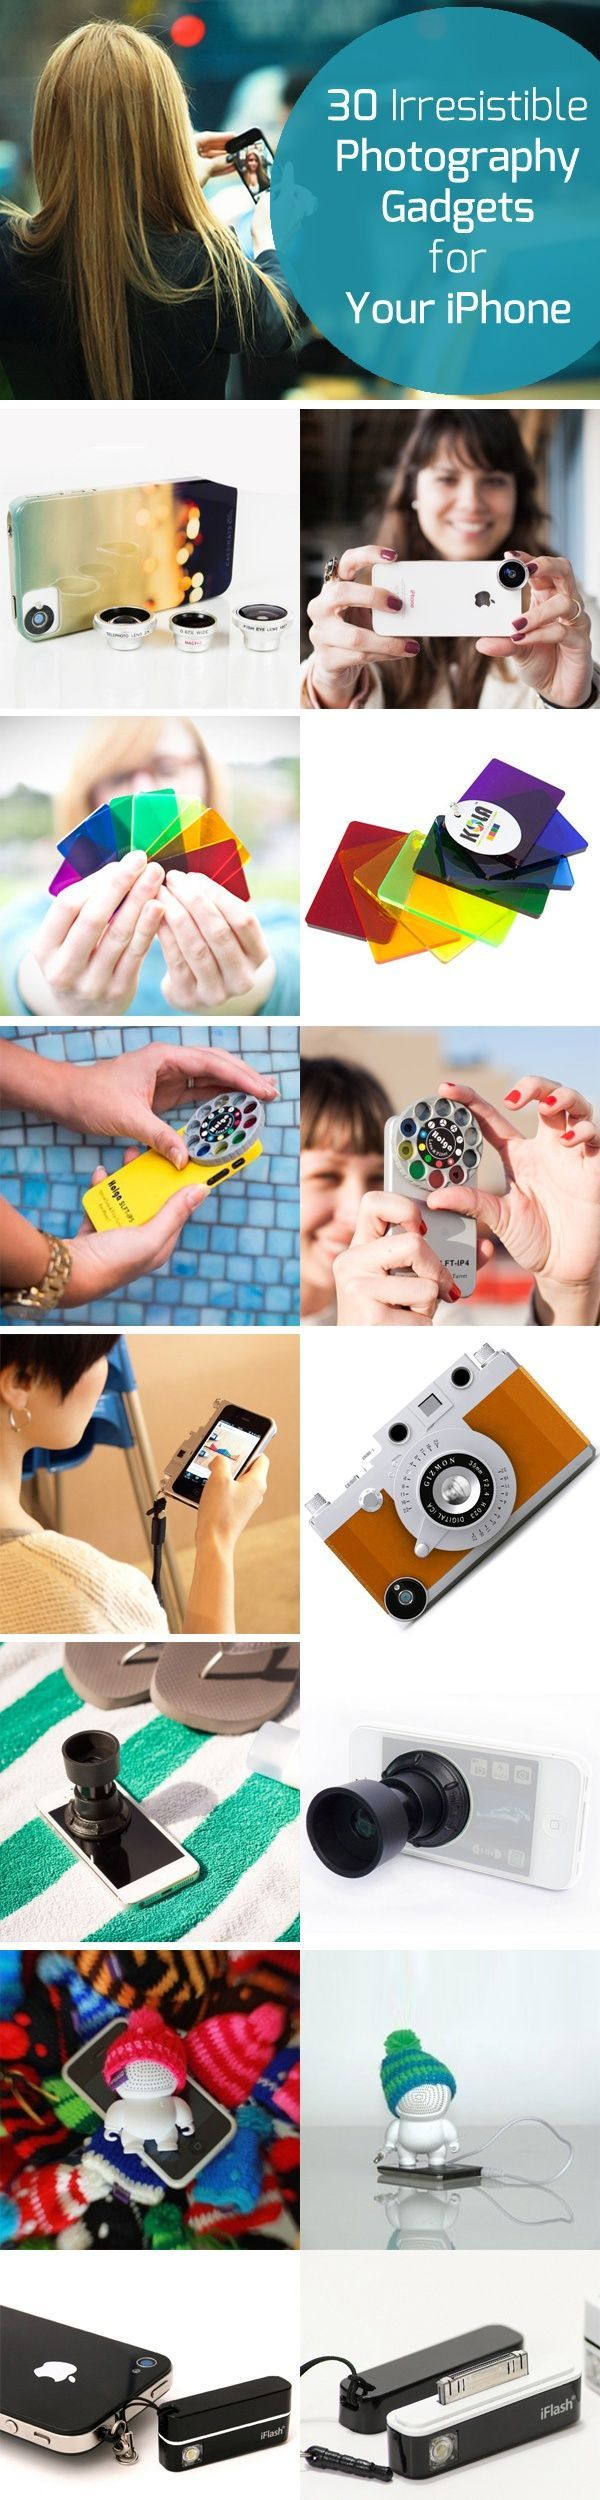 30 Irresistible Photography #Gadgets for Your #iPhone photodoto.com/...